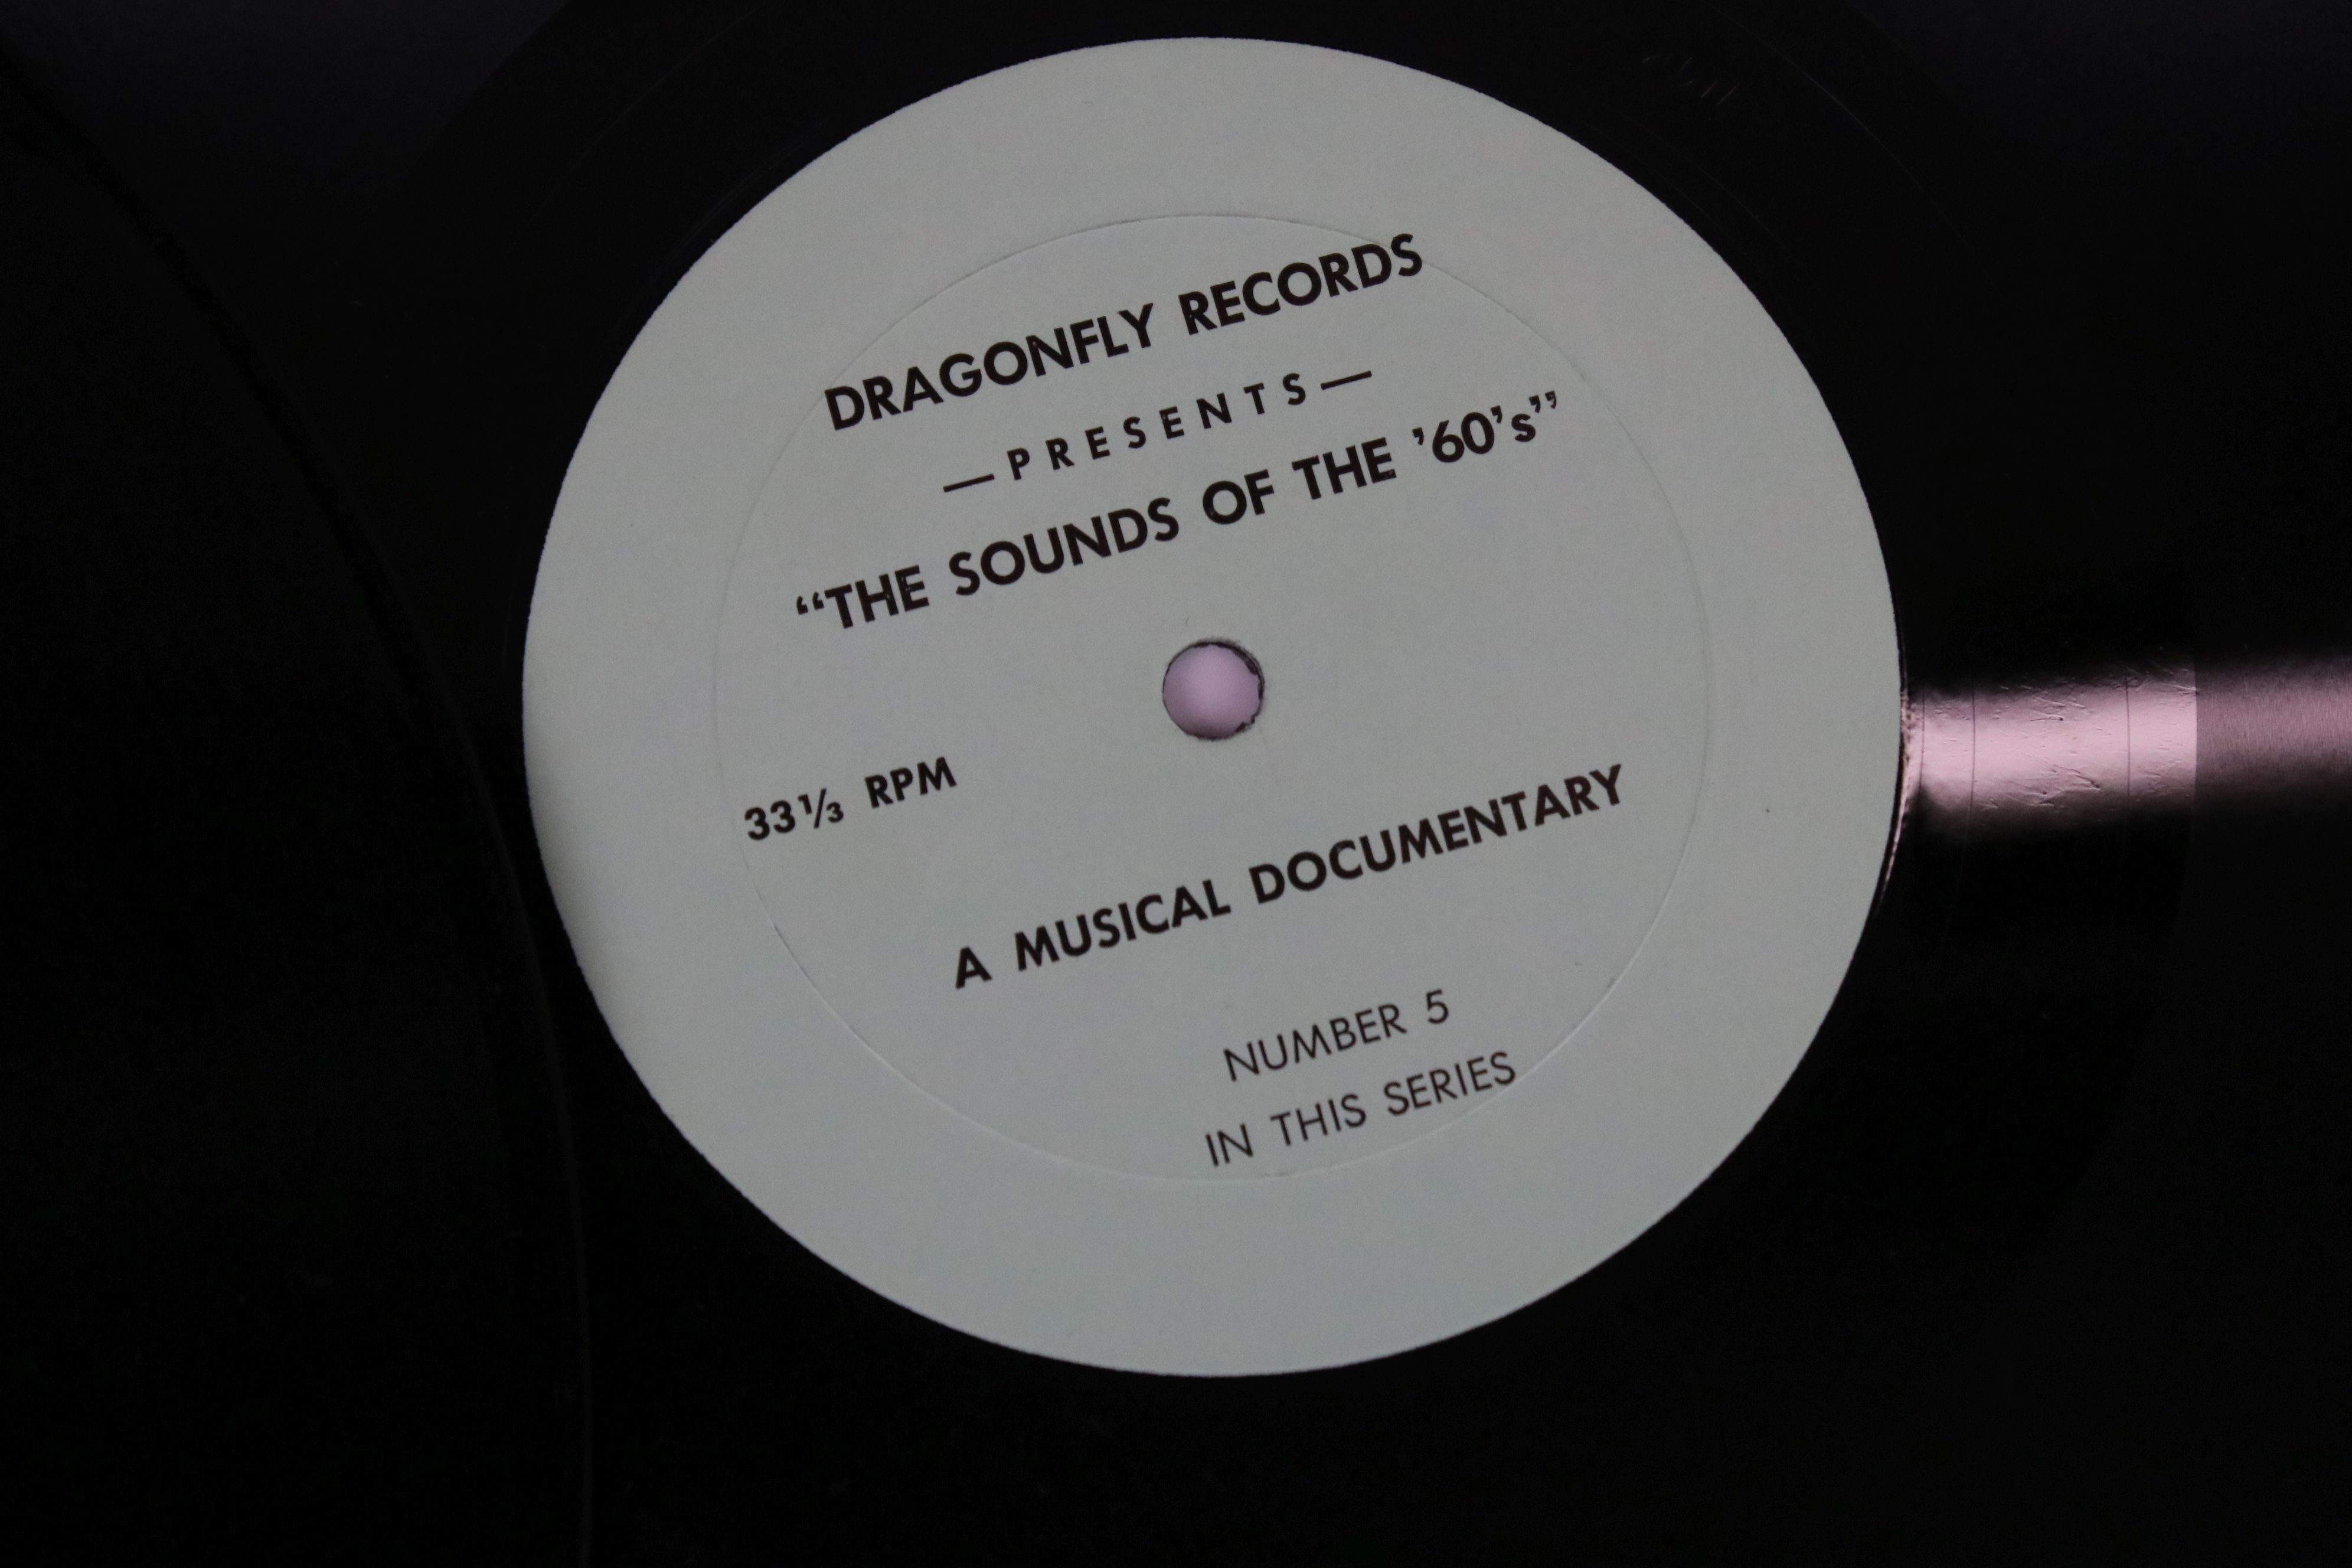 Vinyl - David Bowie The Thin White Duke 1977 Unofficial US Double LP release on Dragonfly label, - Image 4 of 7